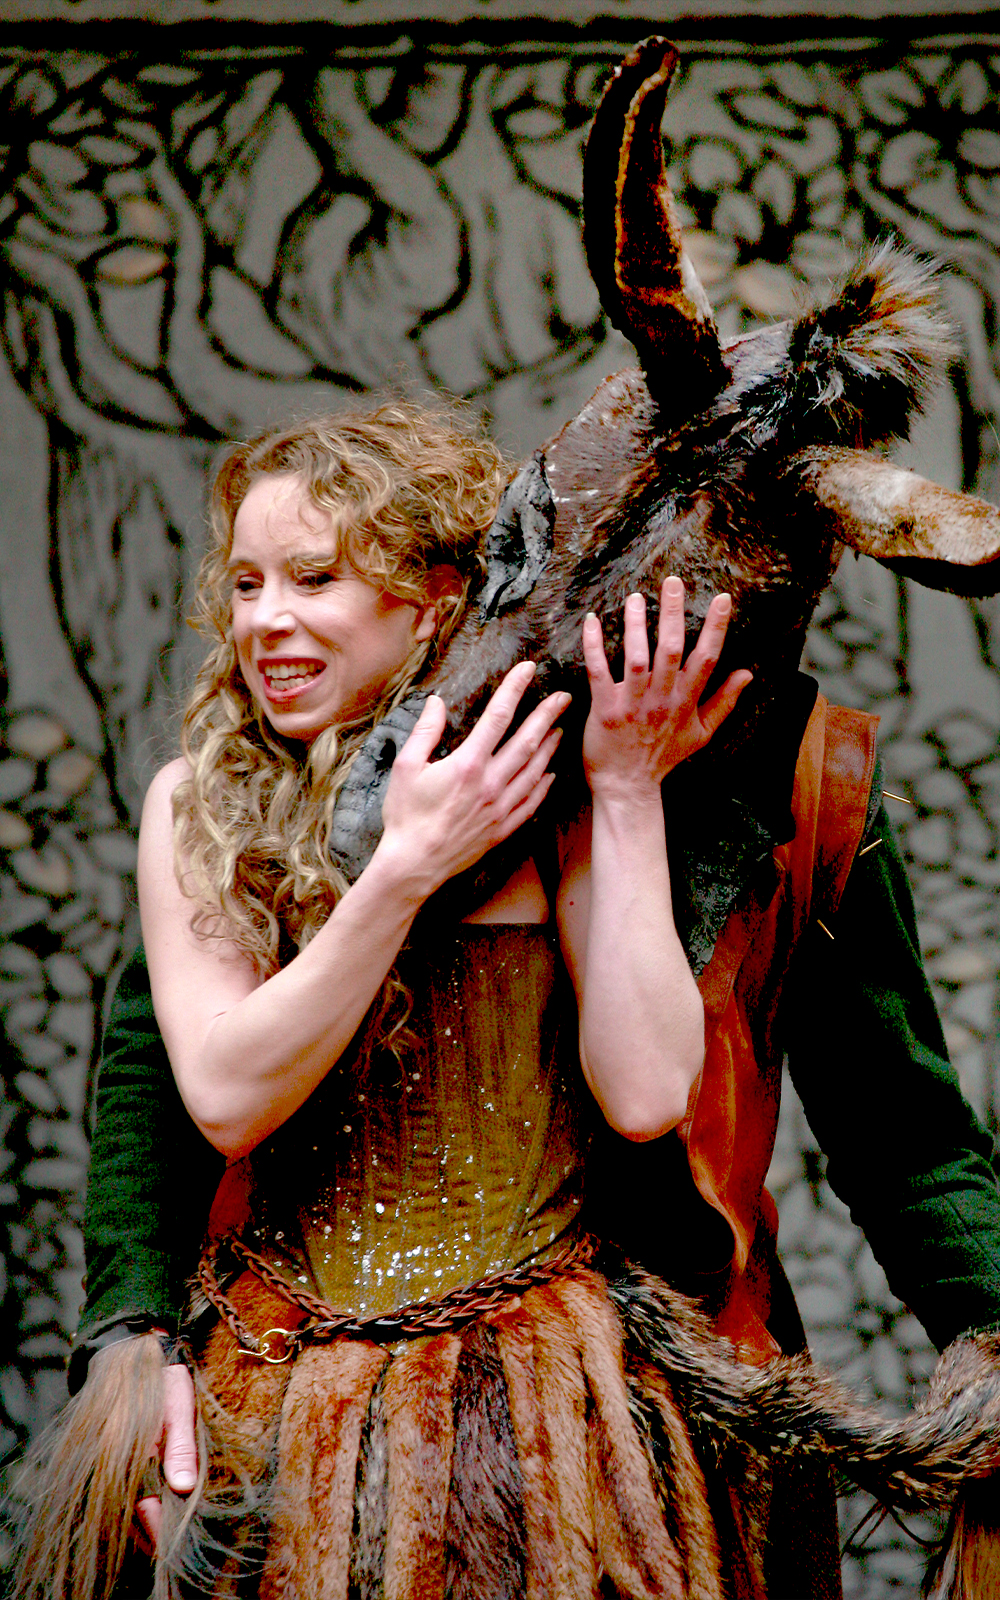 An actress caresses the face of man who has a donkey's head.